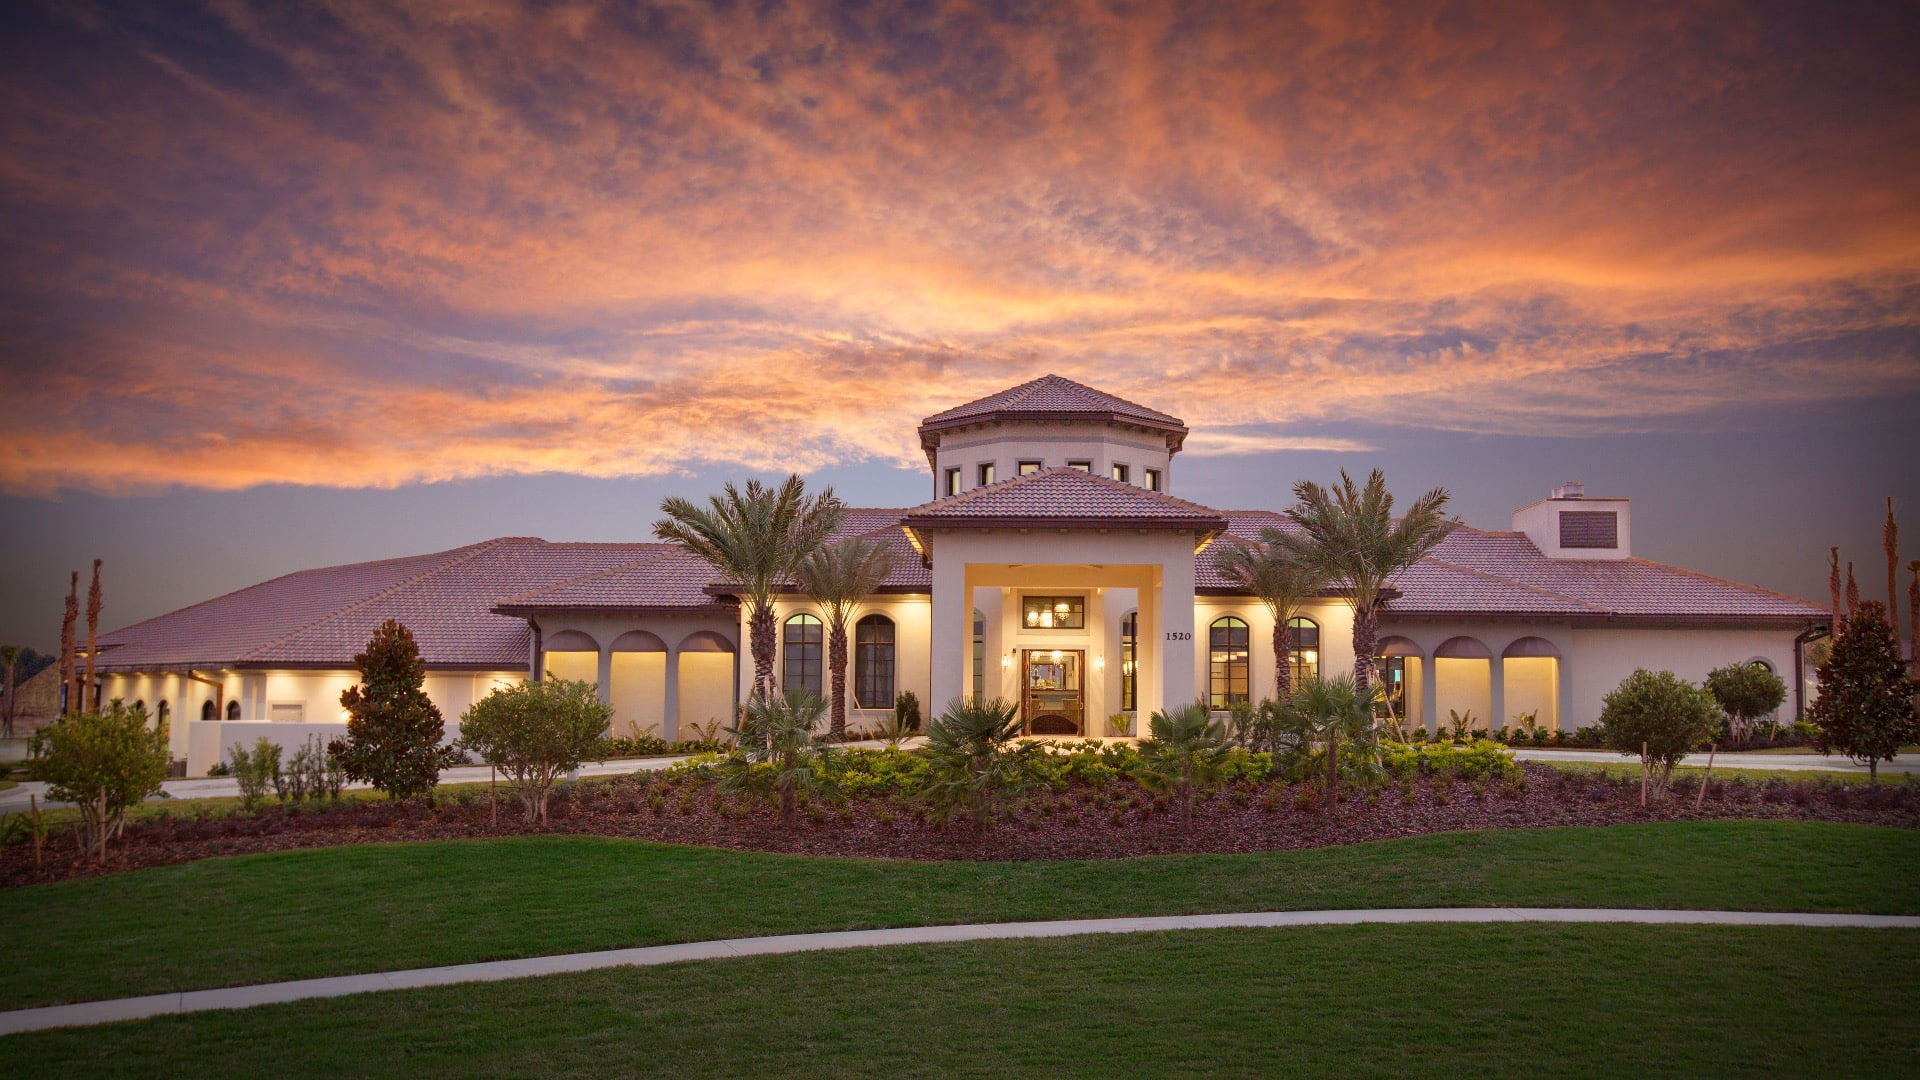 Champions Gate Club house at sunset